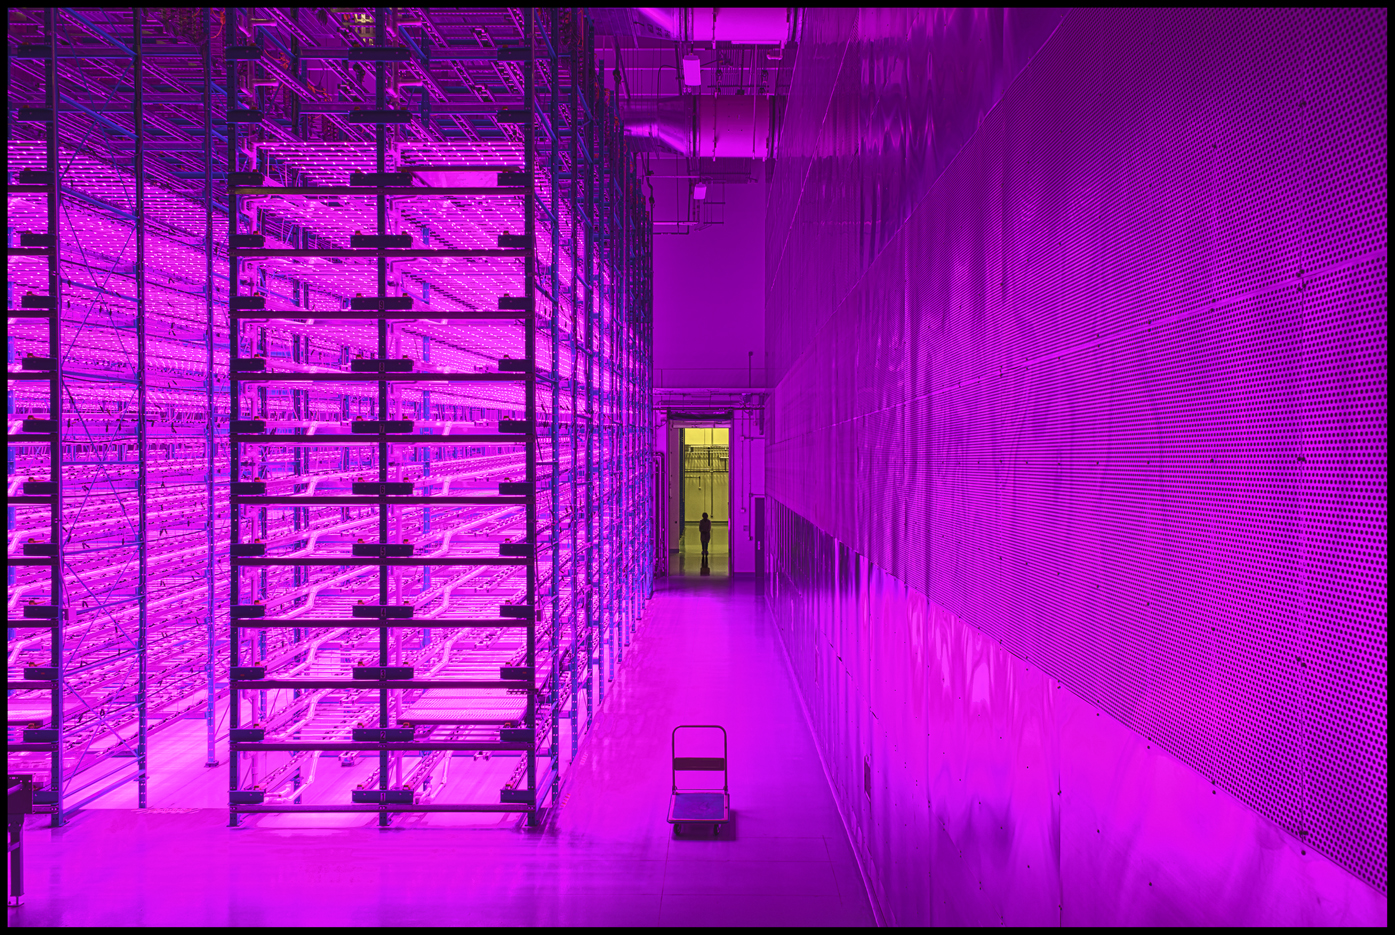 At its Bryan, Texas, facility, Caliber Biotherapeutics grows more than a million plants at a time, stacked 14 layers high, using specialized infrared lights and hydroponic growing techniques.